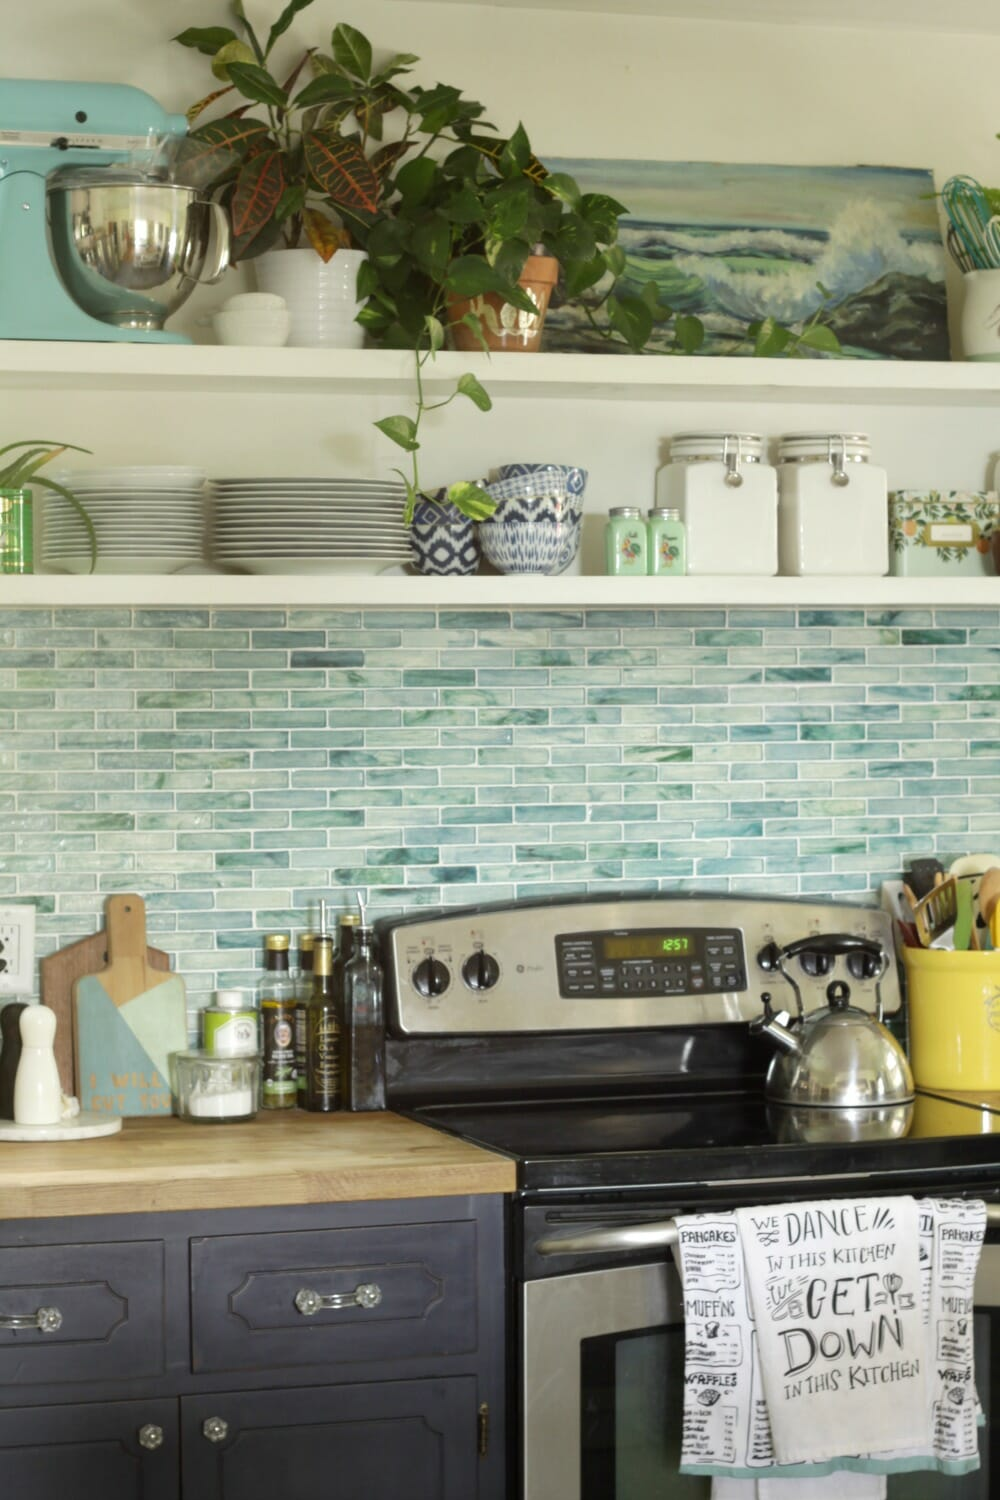 Earthy Vintage Styled Kitchen Shelves (And a Survey!) - Cassie ...